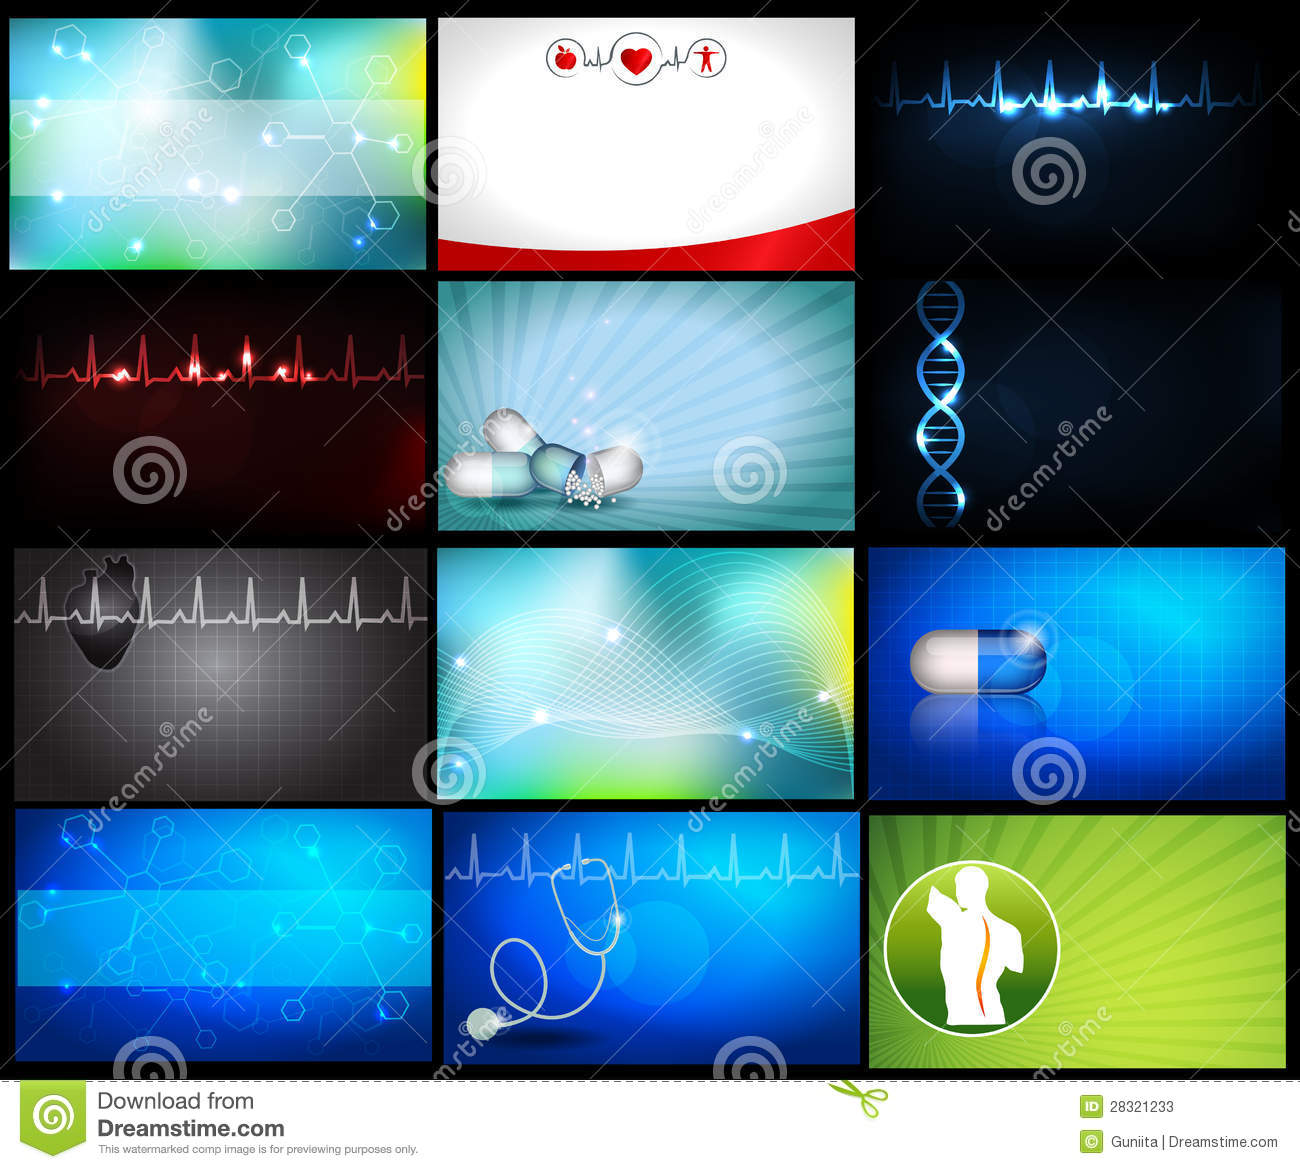 3d Wallpaper Squares Medical Backgrounds Or Business Cards Stock Photos Image